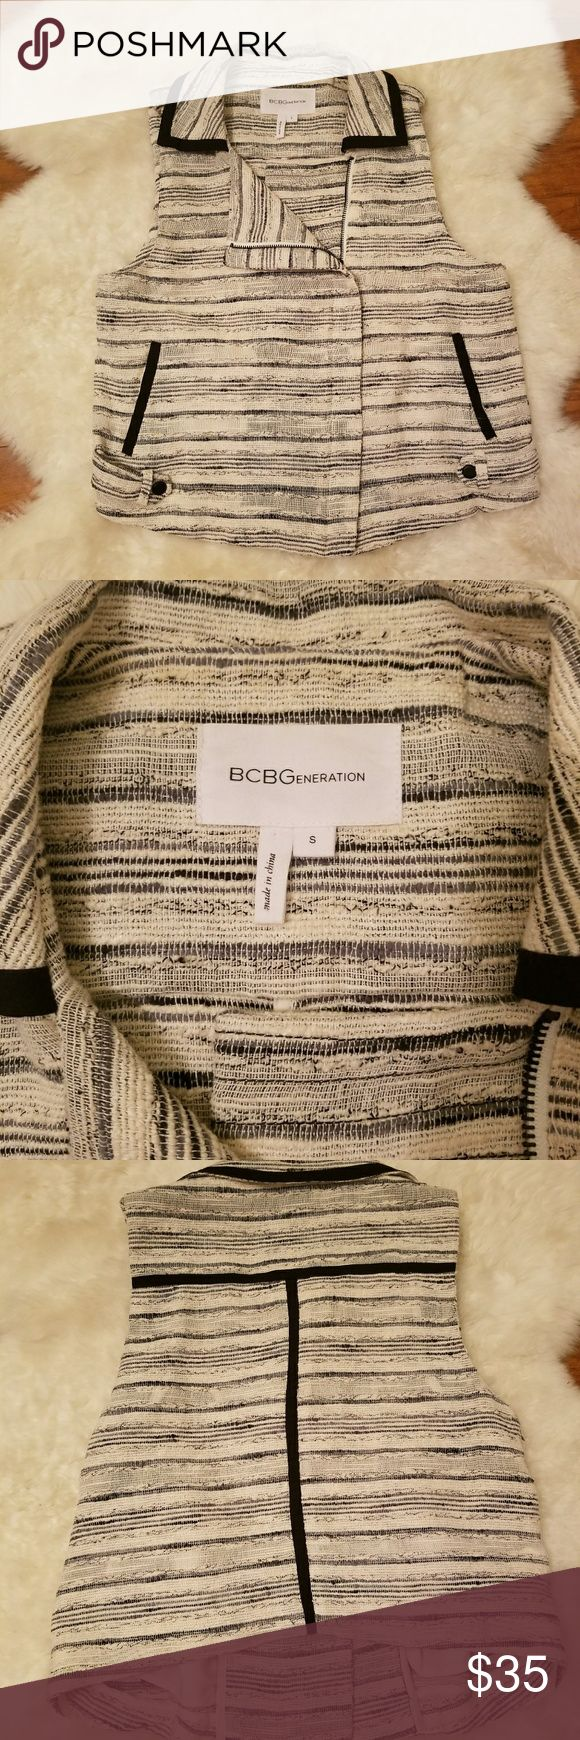 BCBGeneration Vest Size Small Like New! BCBGeneration Vest Size Small Like New! 33in long, bust 36in BCBGeneration Tops